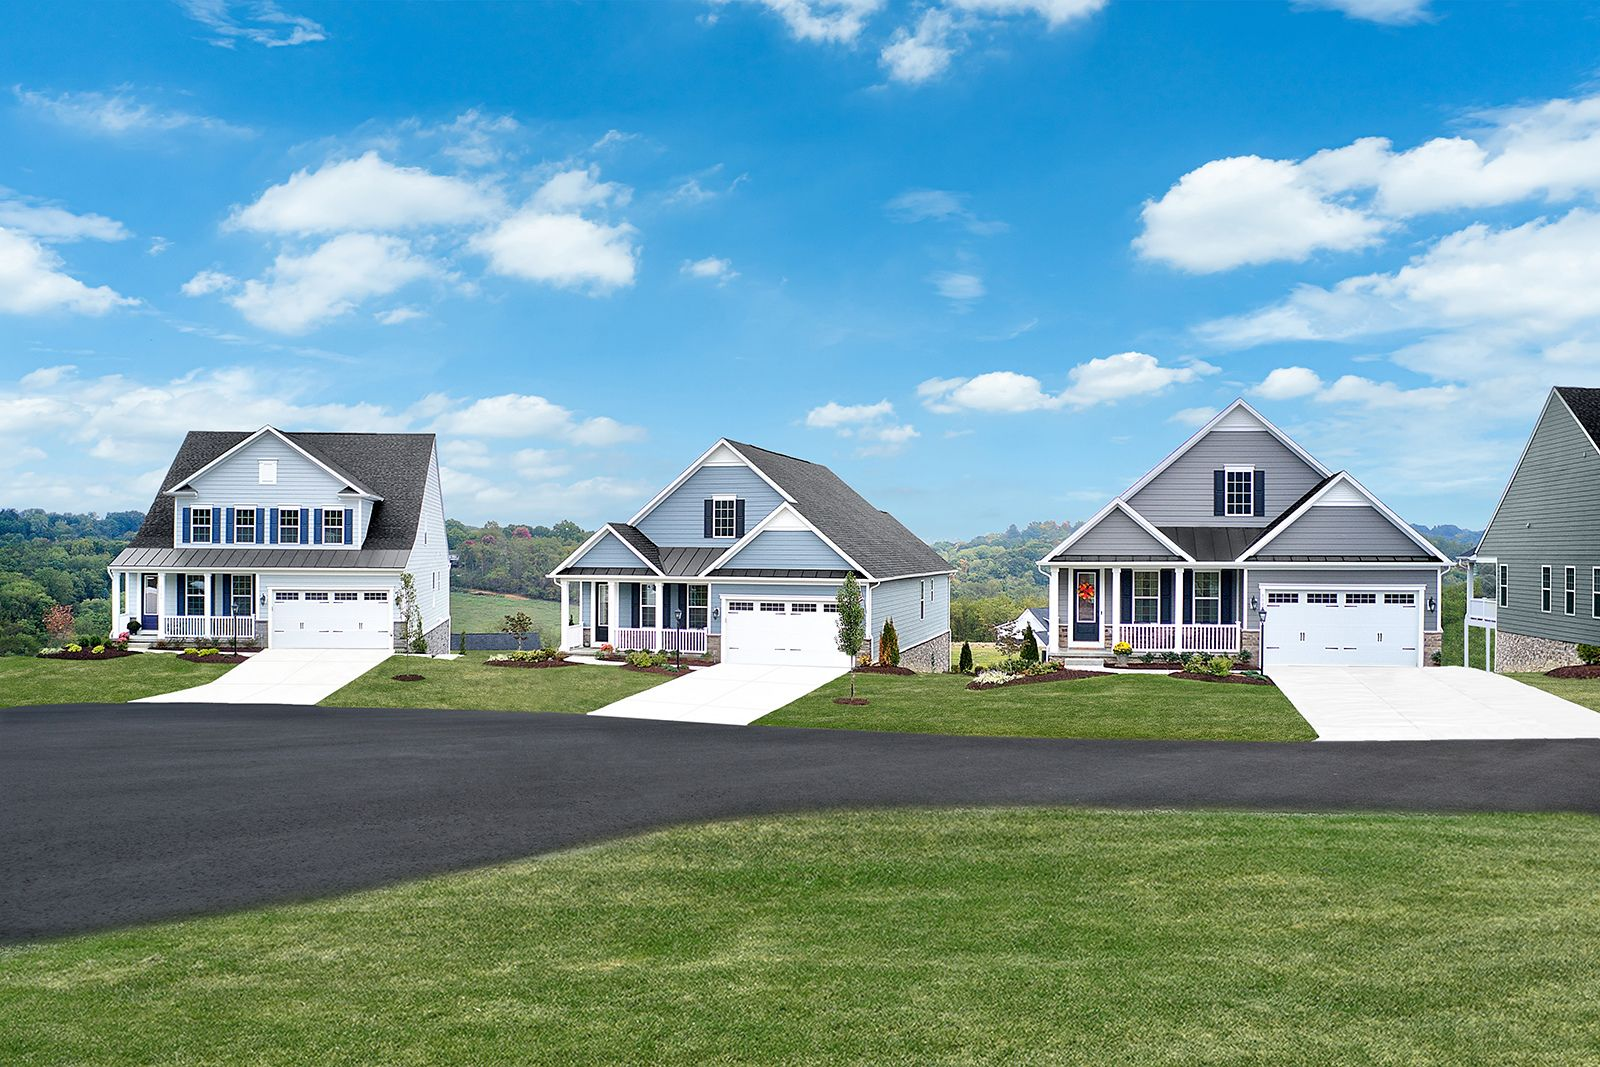 WELCOME HOME TO WATERDAM FARMS:The most-amenity rich ranch-style main level living community with low maintenance in the South Hills with clubhouse, pool, & sports courts.Click here to schedule an appointment.